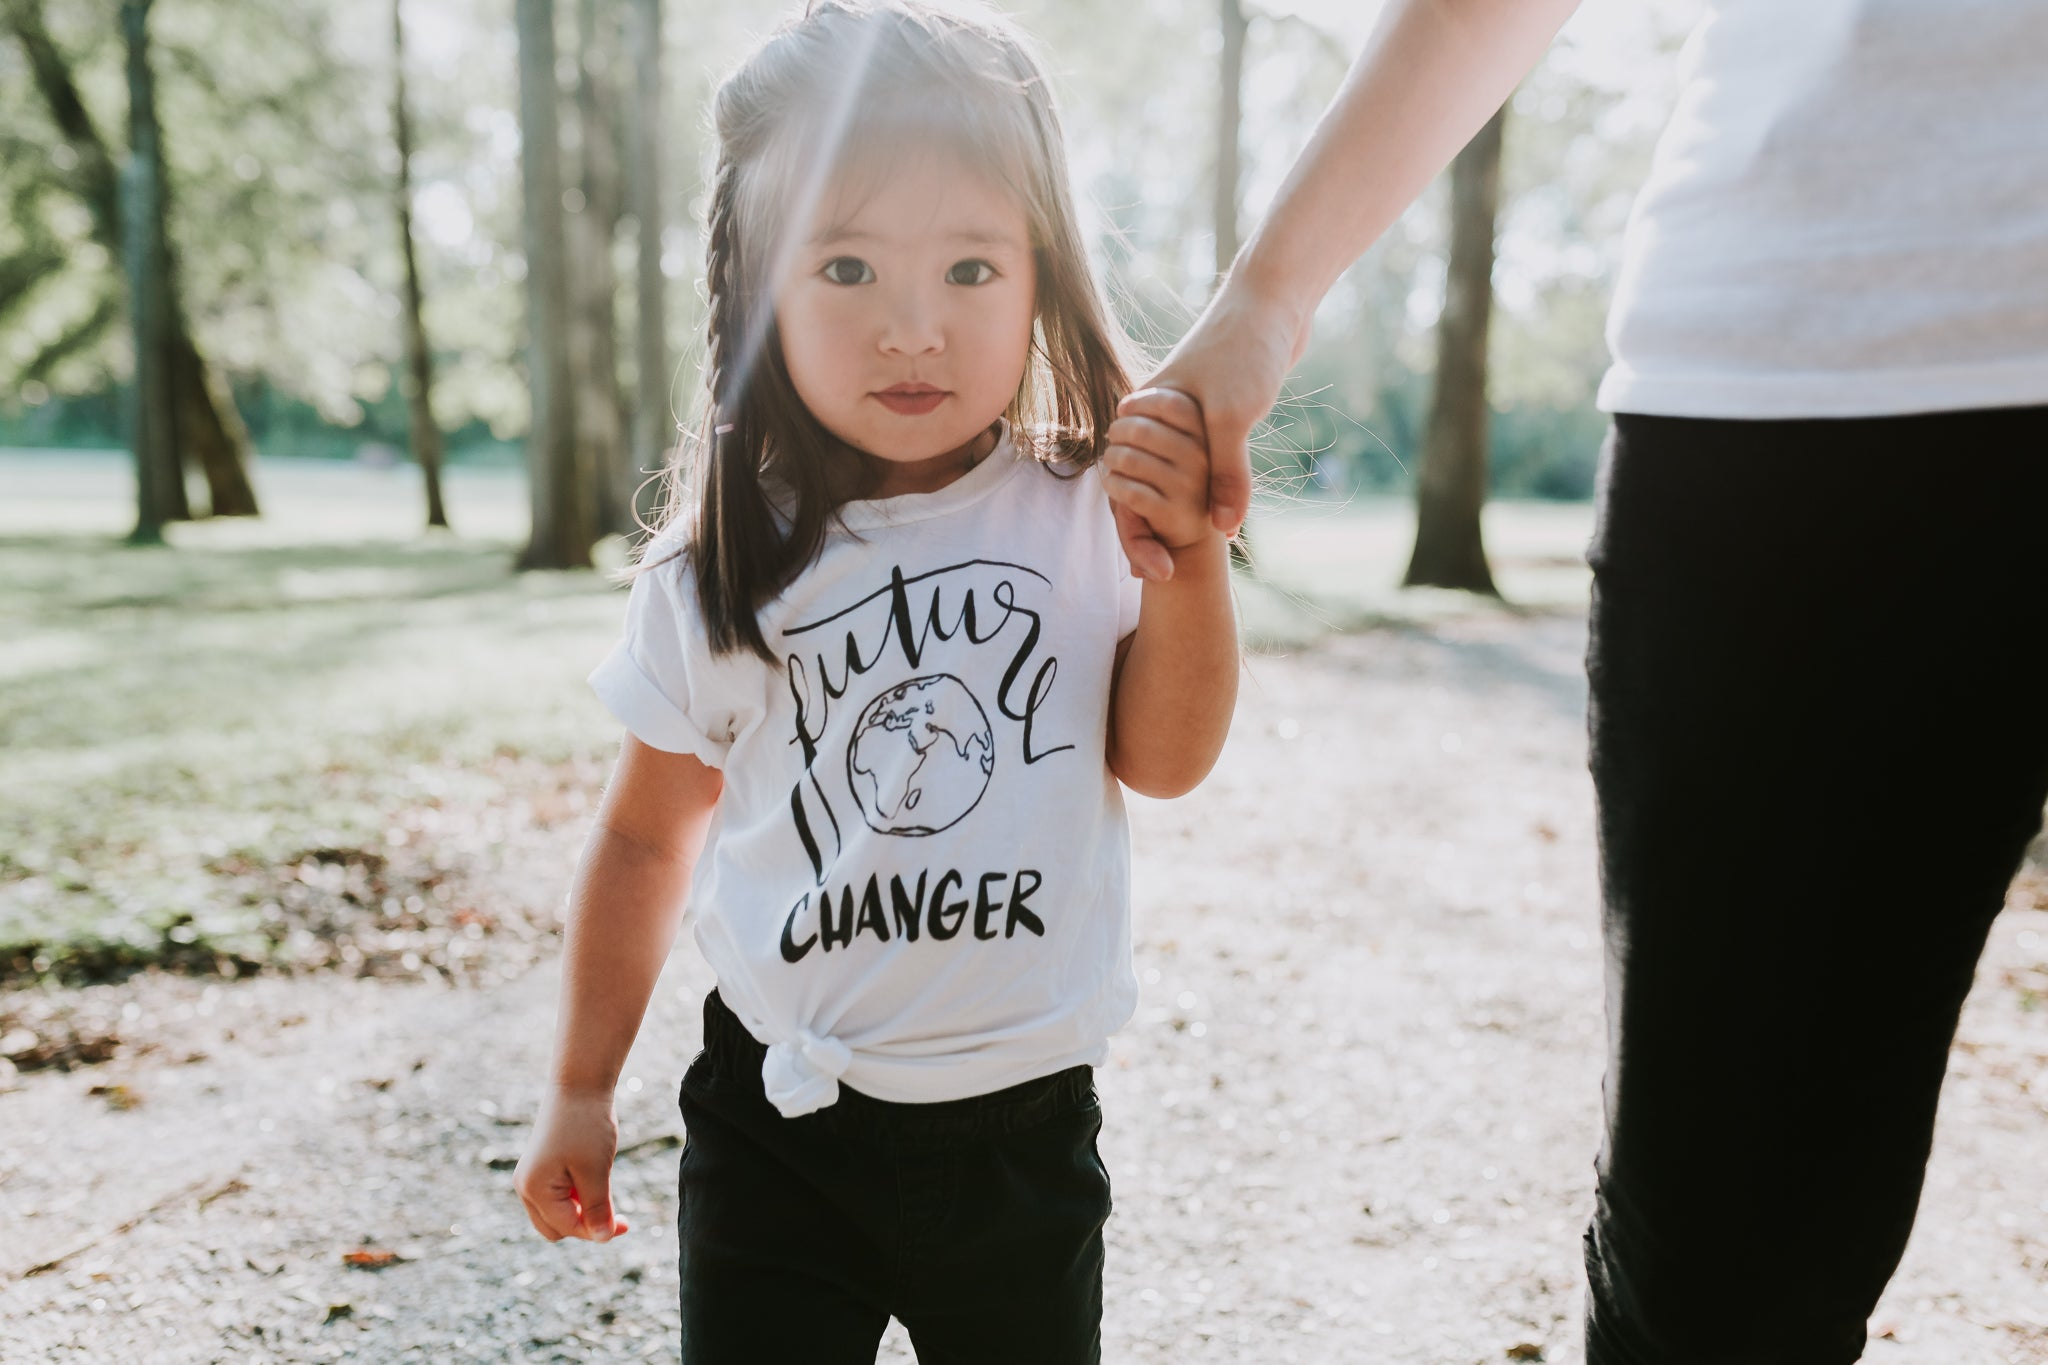 Future World Changer Toddler Organic Tee